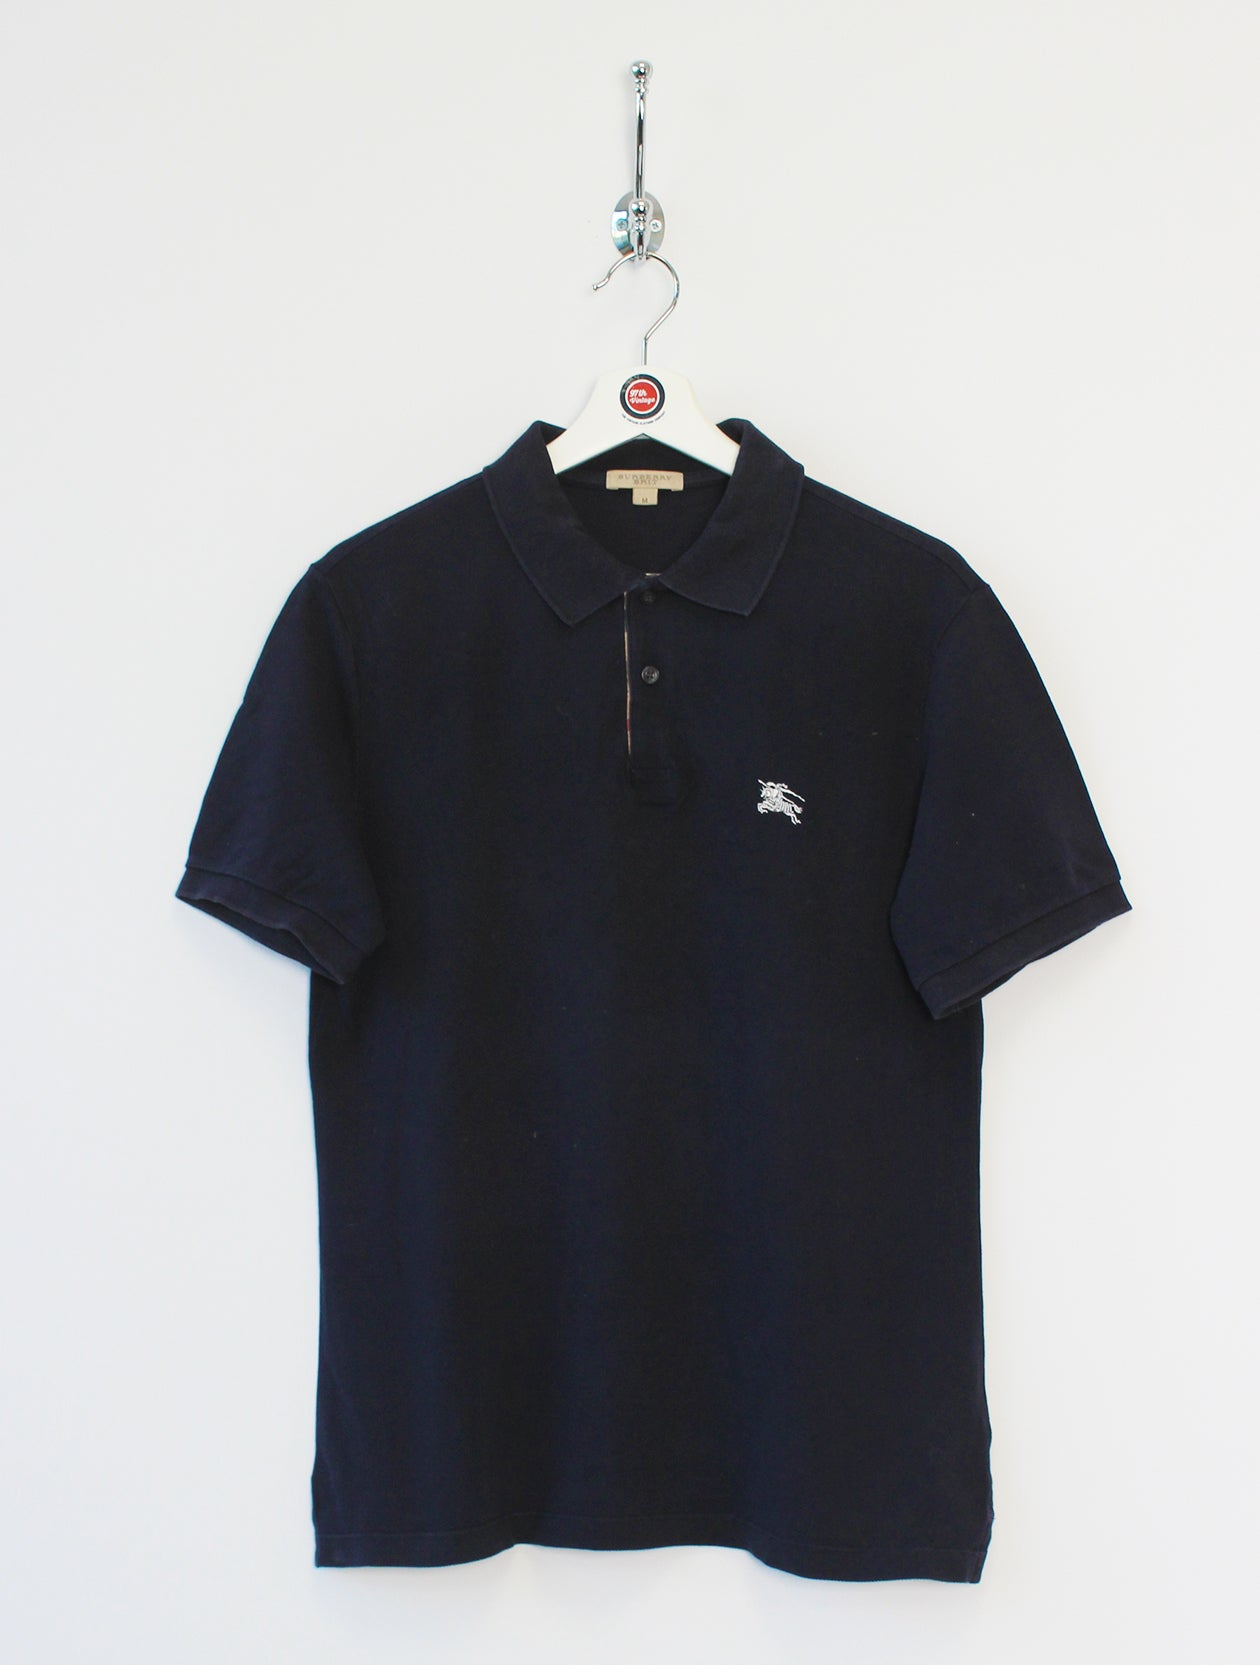 83741686d Are Burberry Polo Shirts Made In China | Top Mode Depot